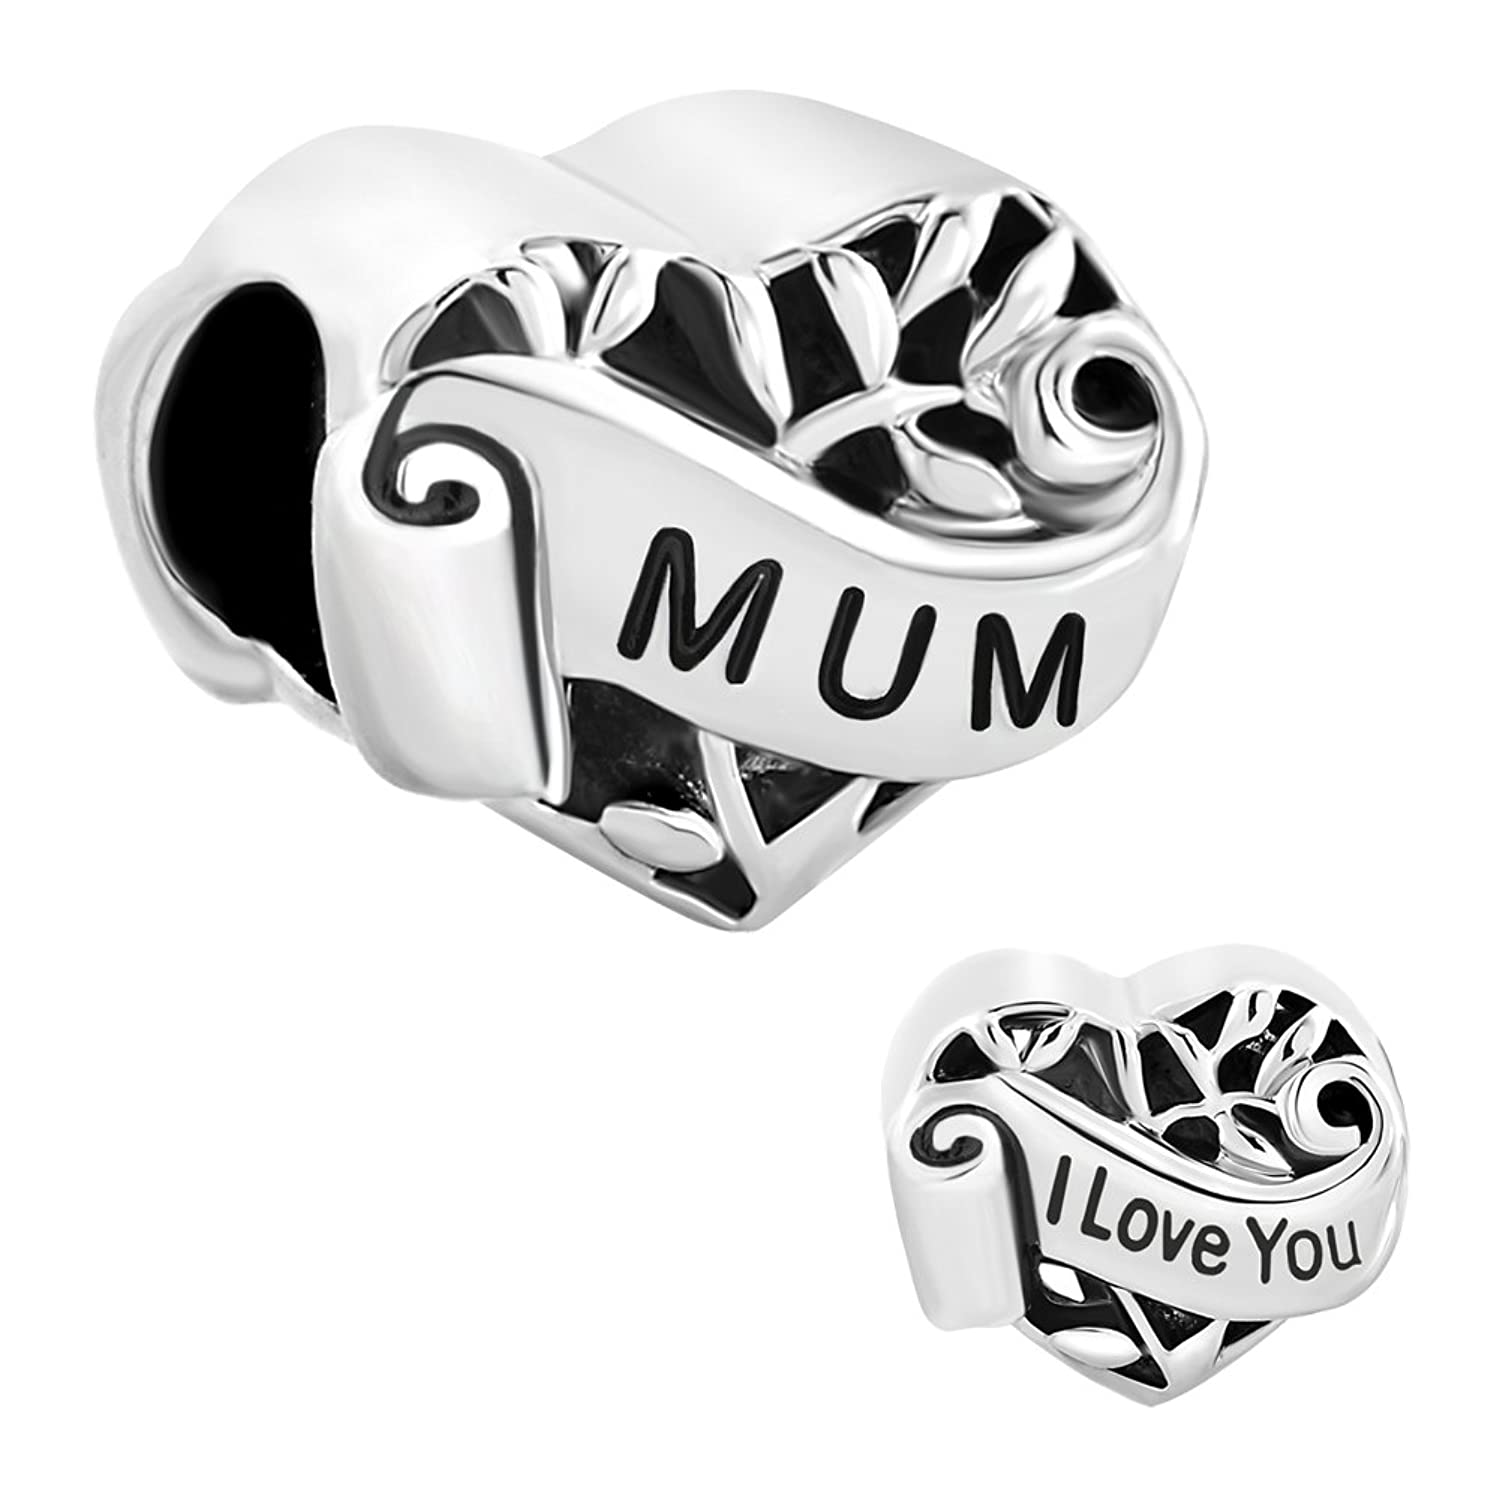 Heart Mum I Love You Mom Mother Filigree Charm Sale Cheap Jewelry Beads Fit Pandora Charms Bracelet pandora viola bloom flower pendant charm 790858spb cheap [5fea] $34 00 professional pandora outlet stores pandoraforyou cn